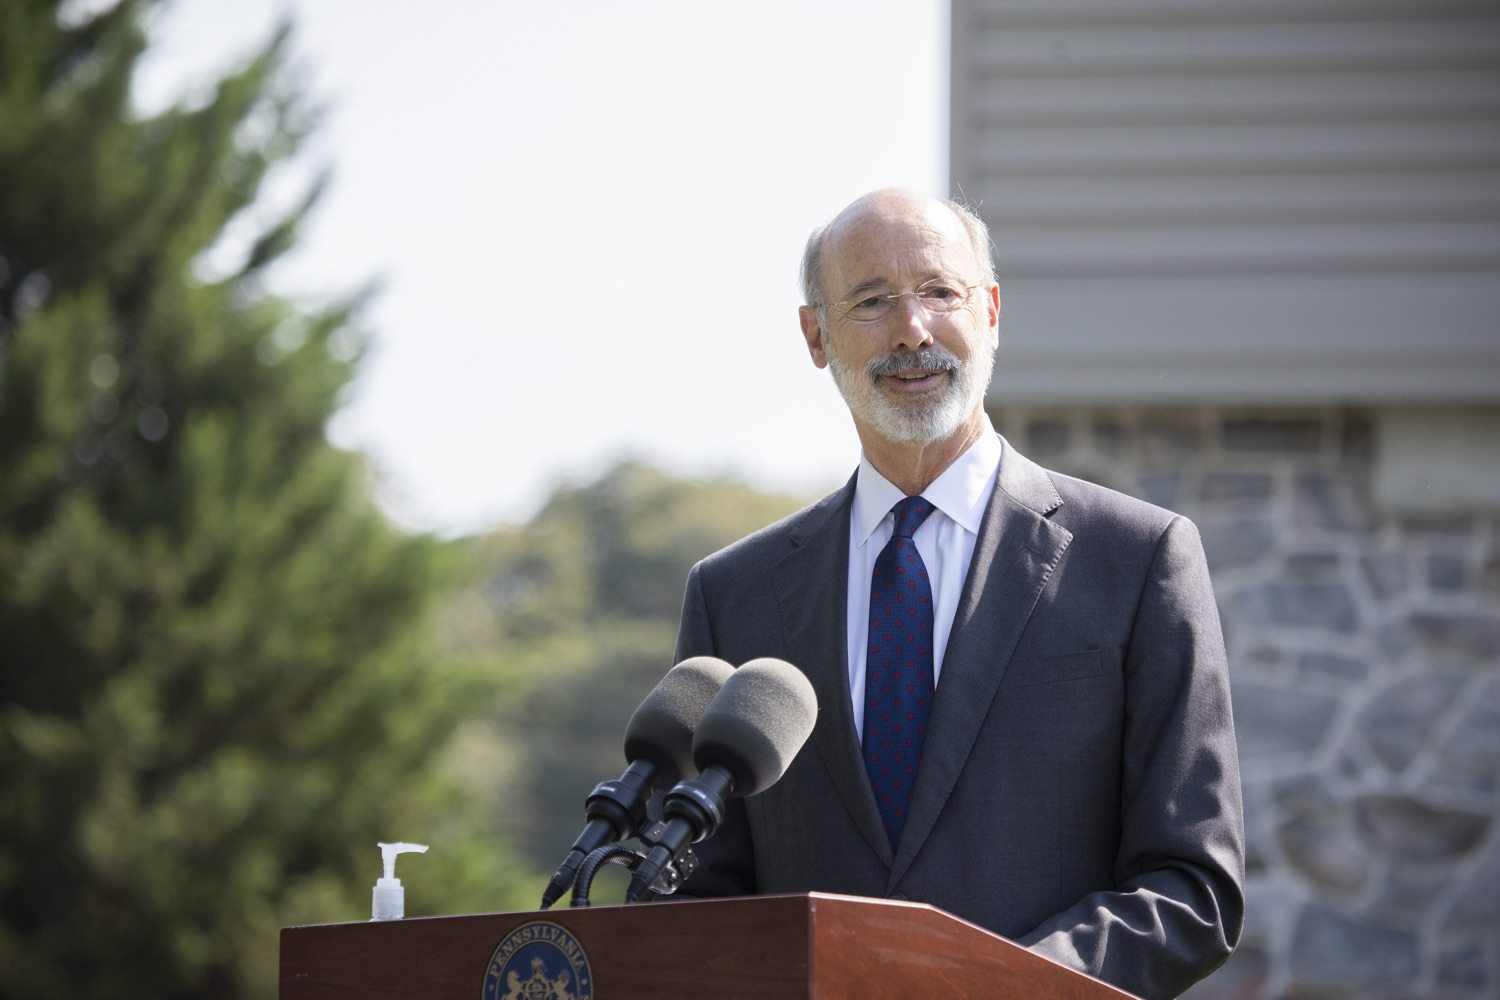 "<a href=""https://filesource.wostreaming.net/commonwealthofpa/photo/18248_gov_evictions_dz_044.jpg"" target=""_blank"">⇣ Download Photo<br></a>Pennsylvania Governor Tom Wolf speaking to the press. With rent and mortgage debt mounting for hundreds of thousands of Pennsylvanians, Governor Tom Wolf is calling on the General Assembly to fix a state relief program to prevent many families from becoming homeless and enact a moratorium on evictions and foreclosures until the end of the year. The governor was joined today by legislators and housing advocates at a press conference in Lancaster County. Harrisburg, PA  Sept. 8, 2020"